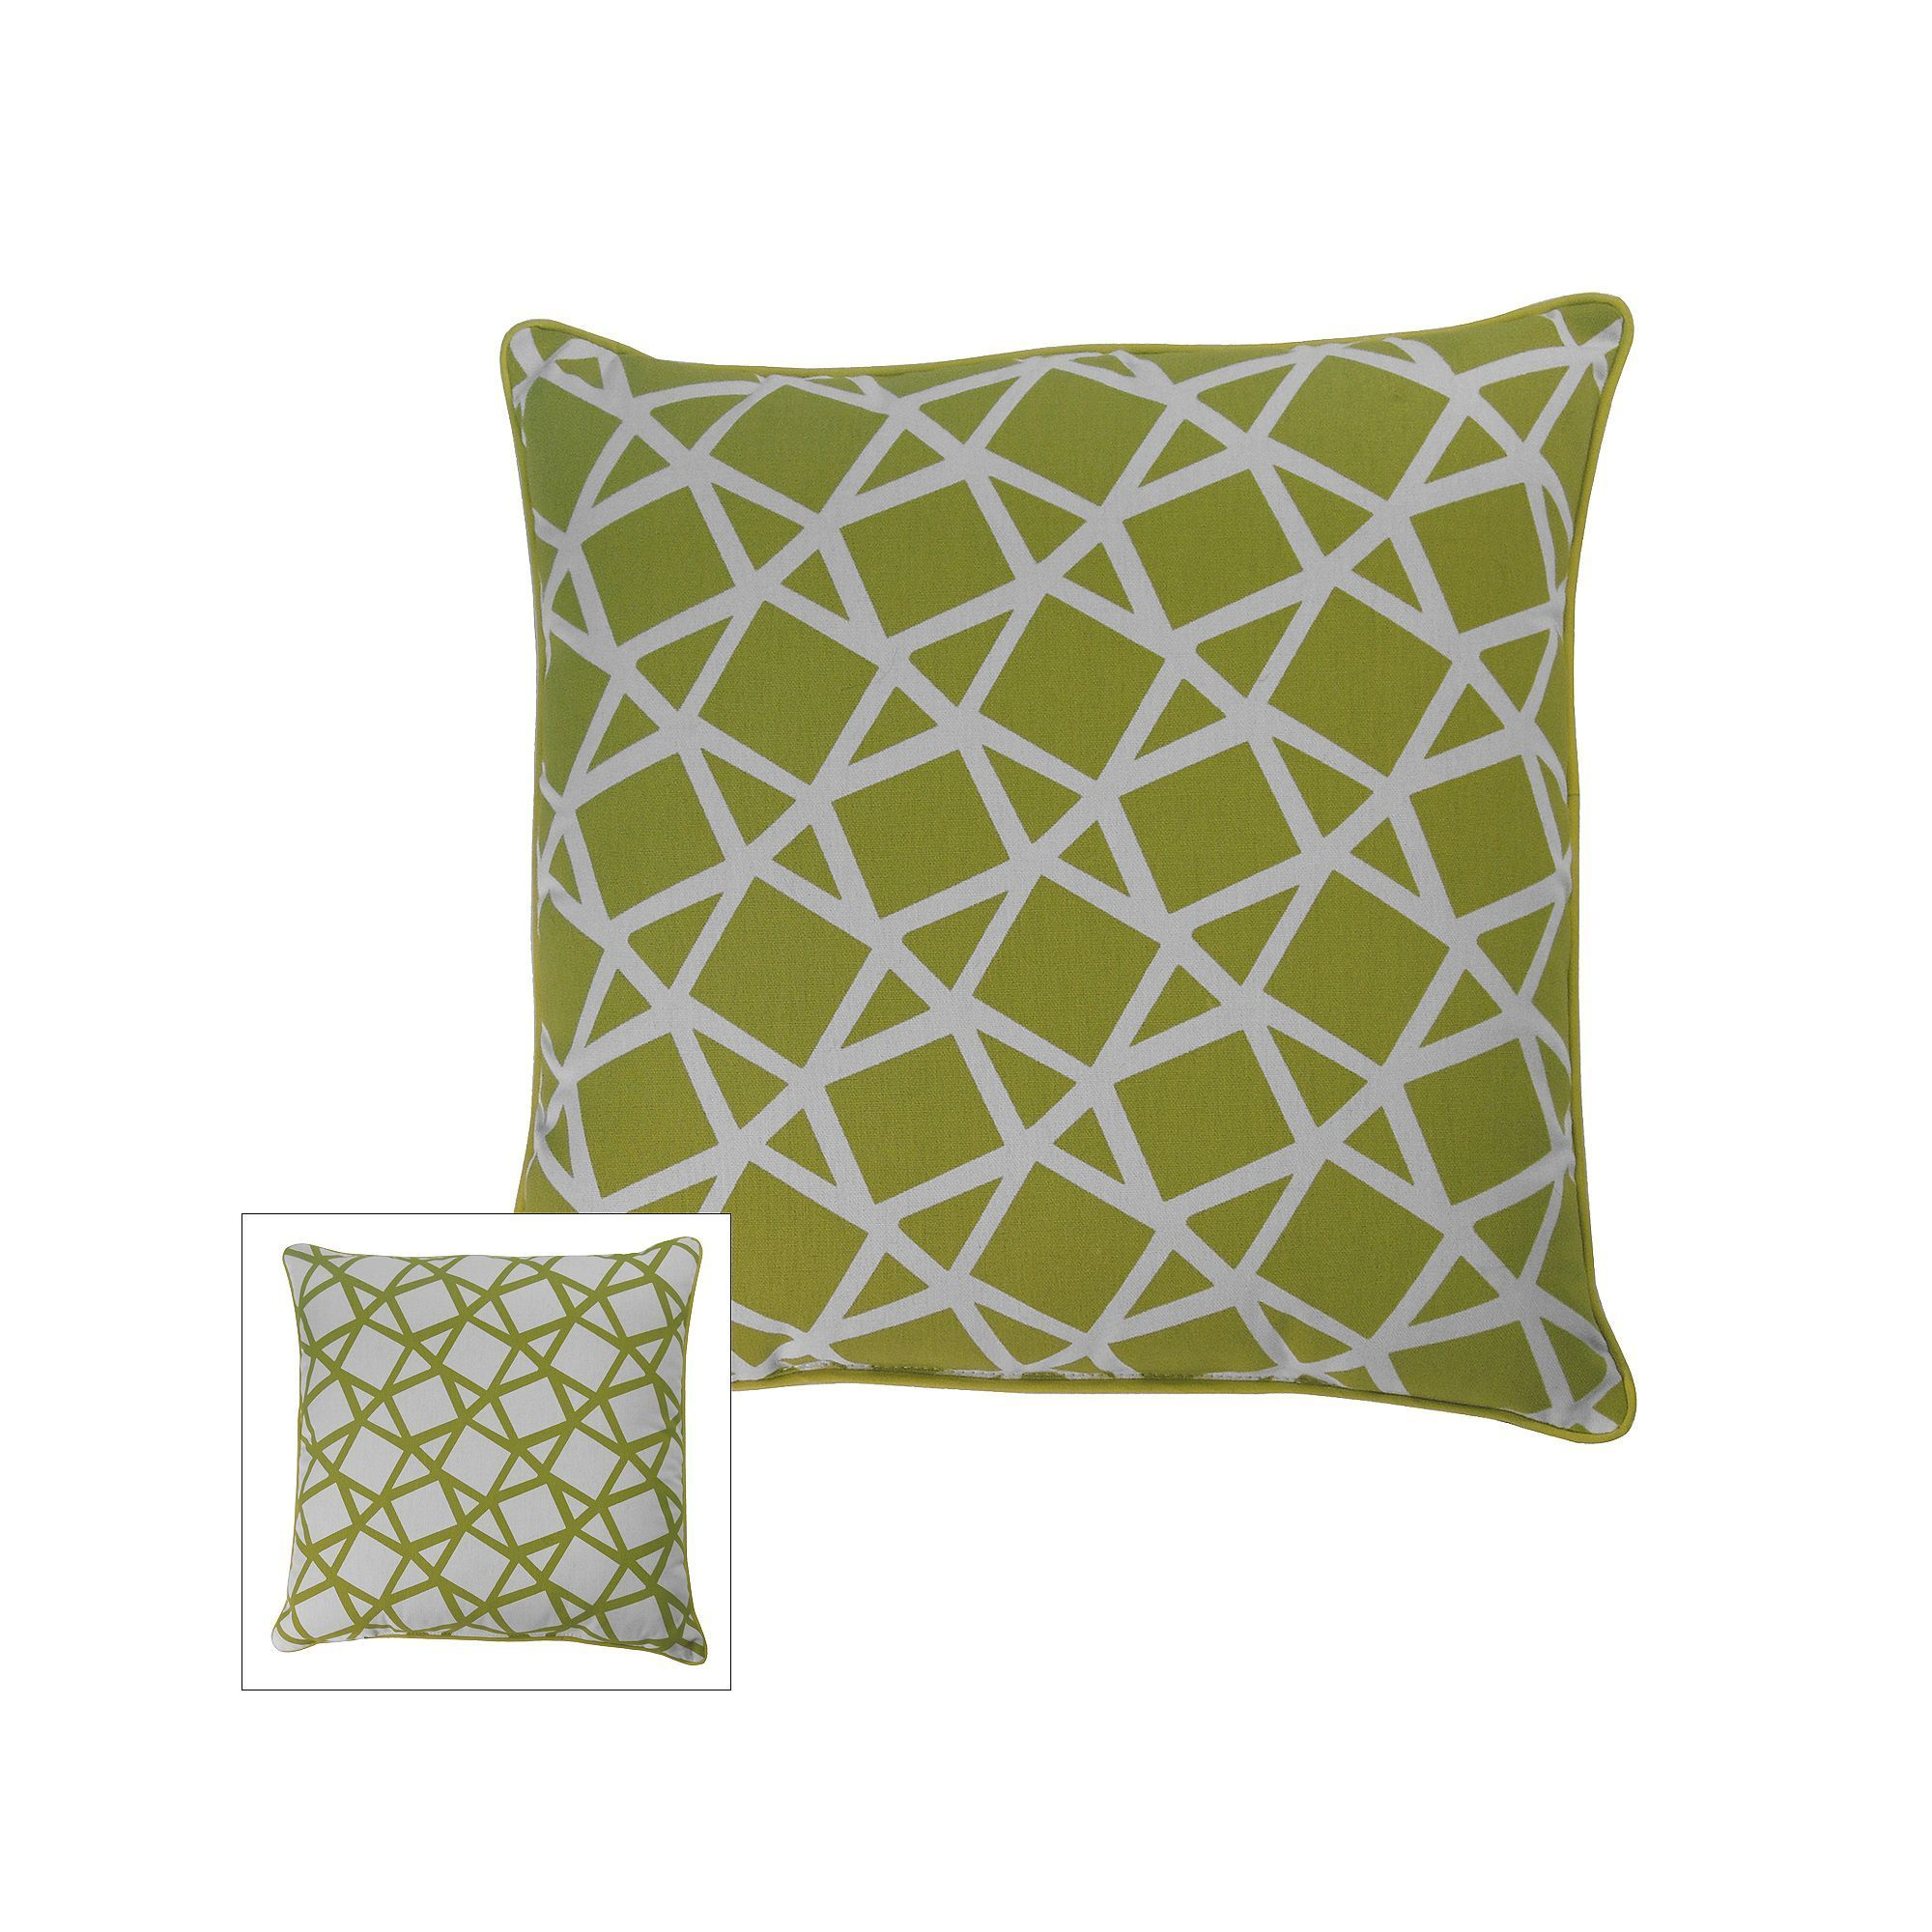 m kennedy home crystal geometric throw pillow yellow  products  - m kennedy home crystal geometric throw pillow yellow